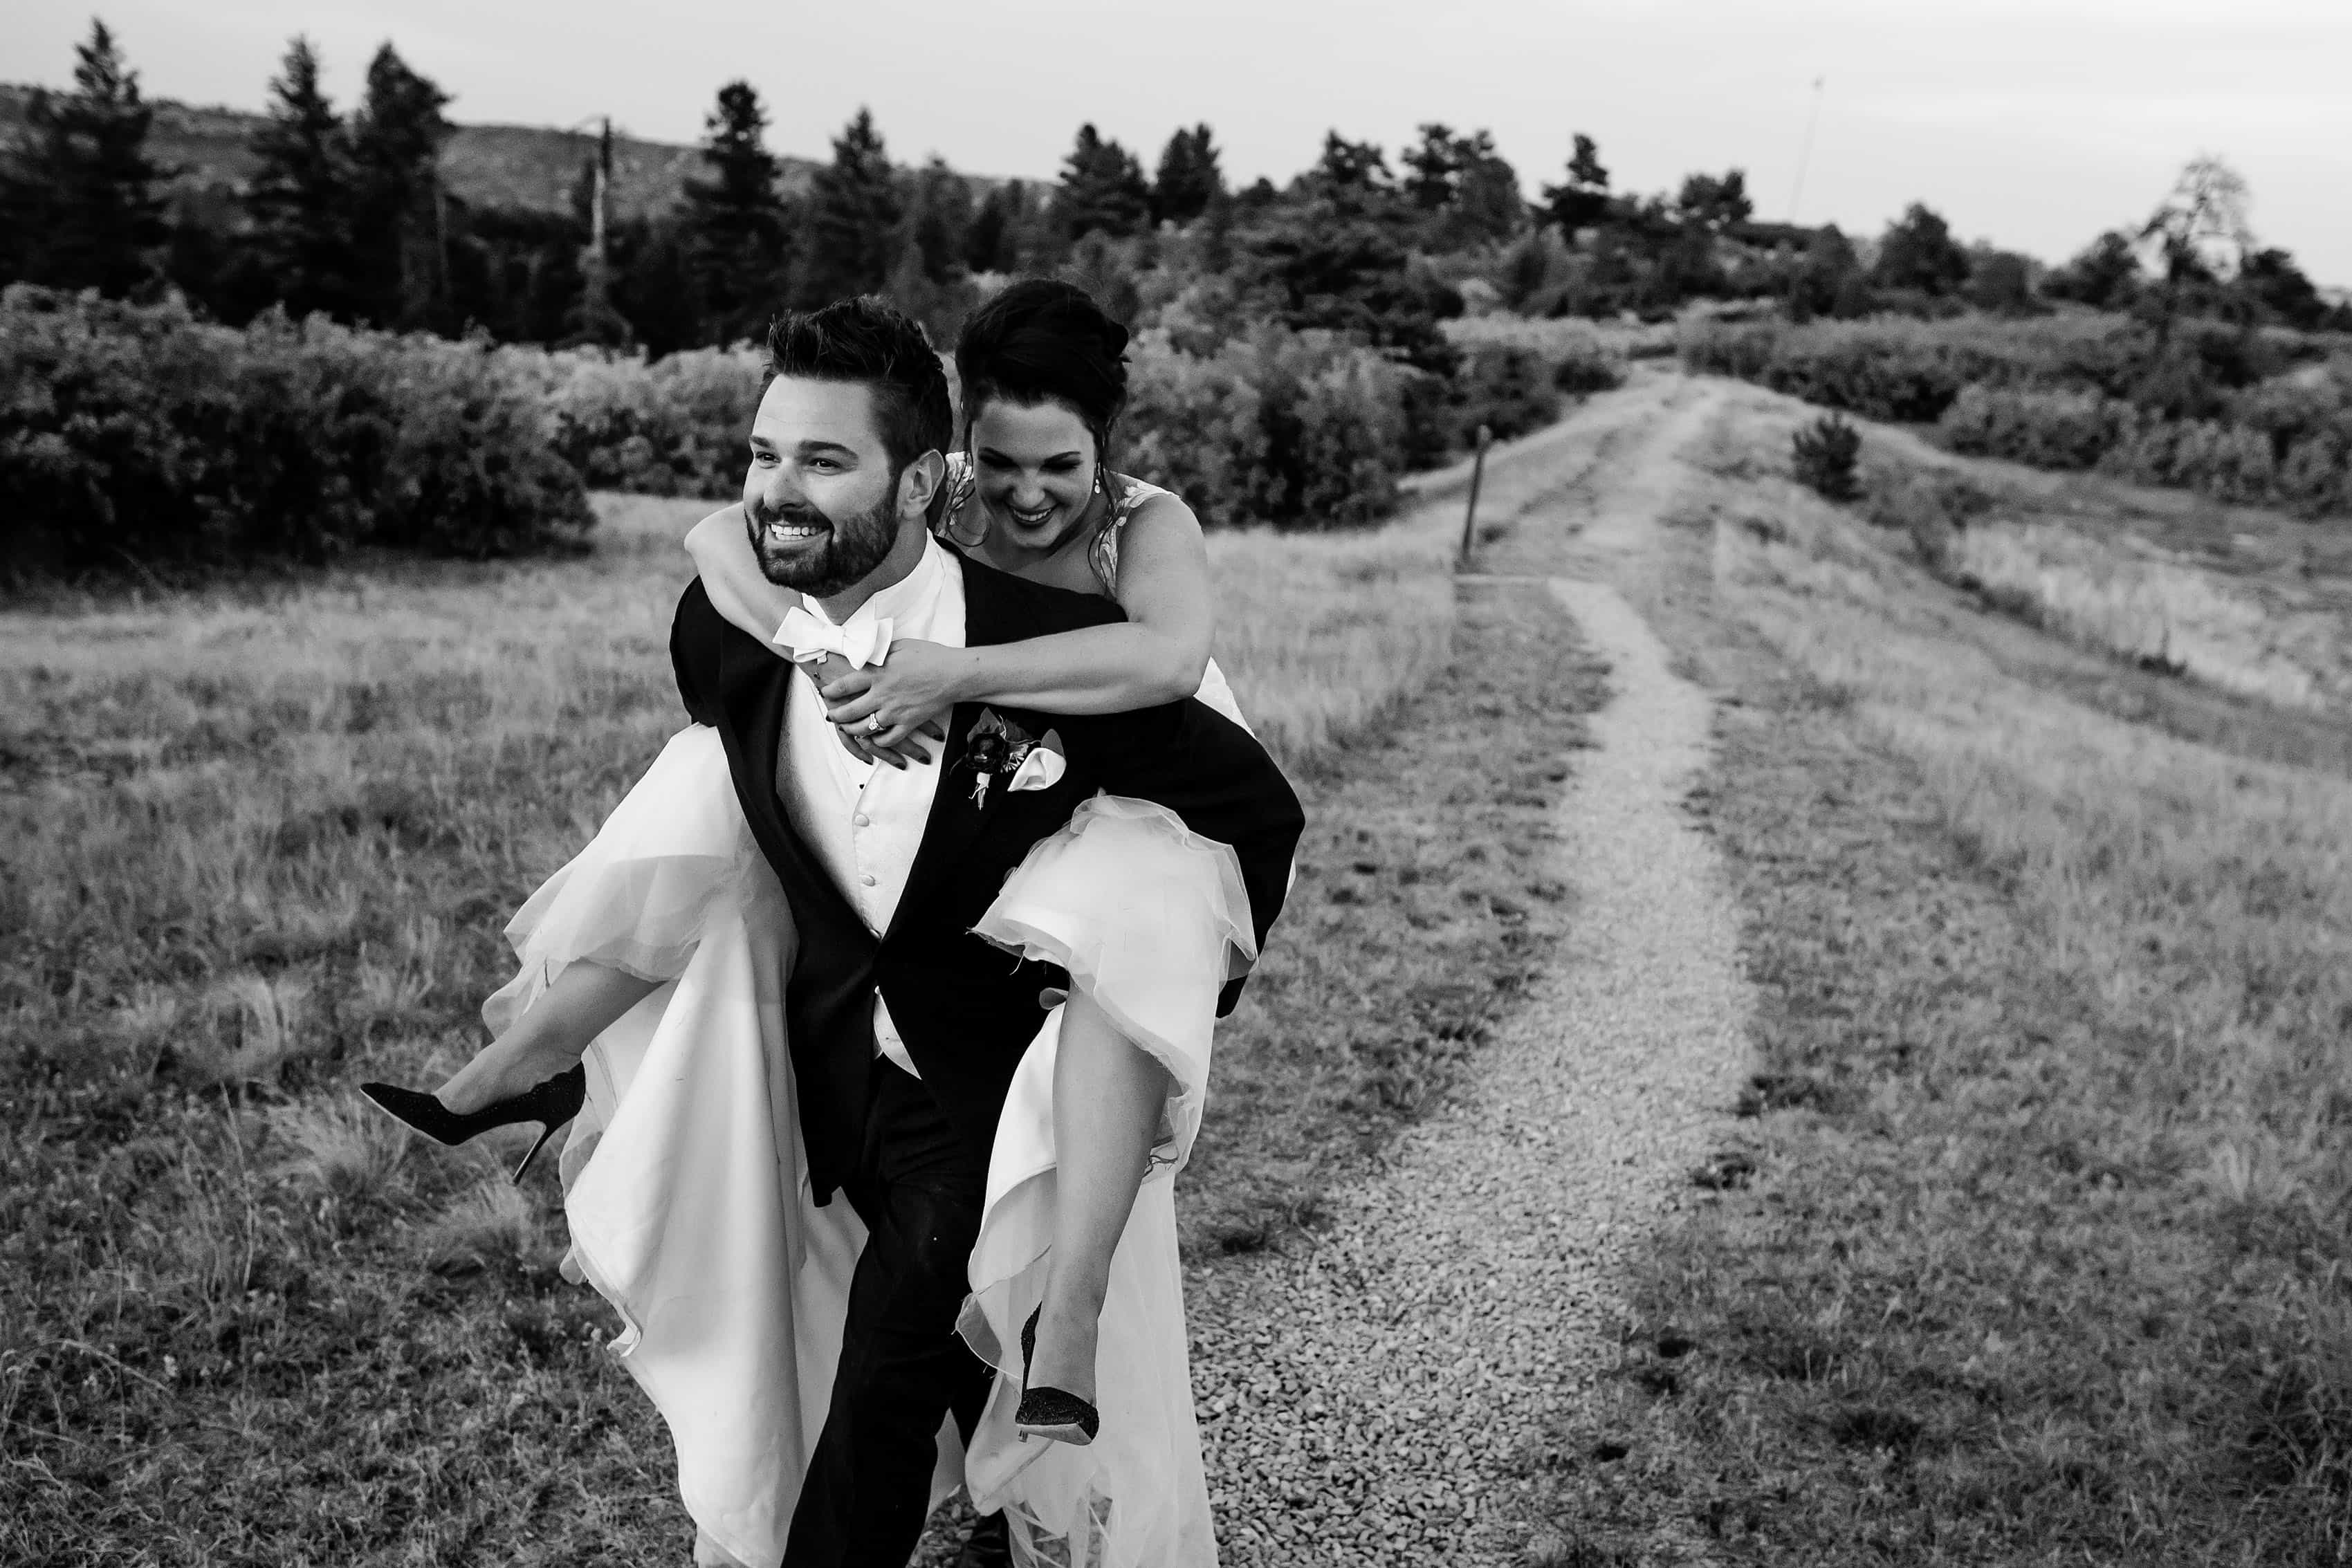 Jordan carries Melissa back to Cherokee Ranch and Castle for their wedding reception after posing for portraits